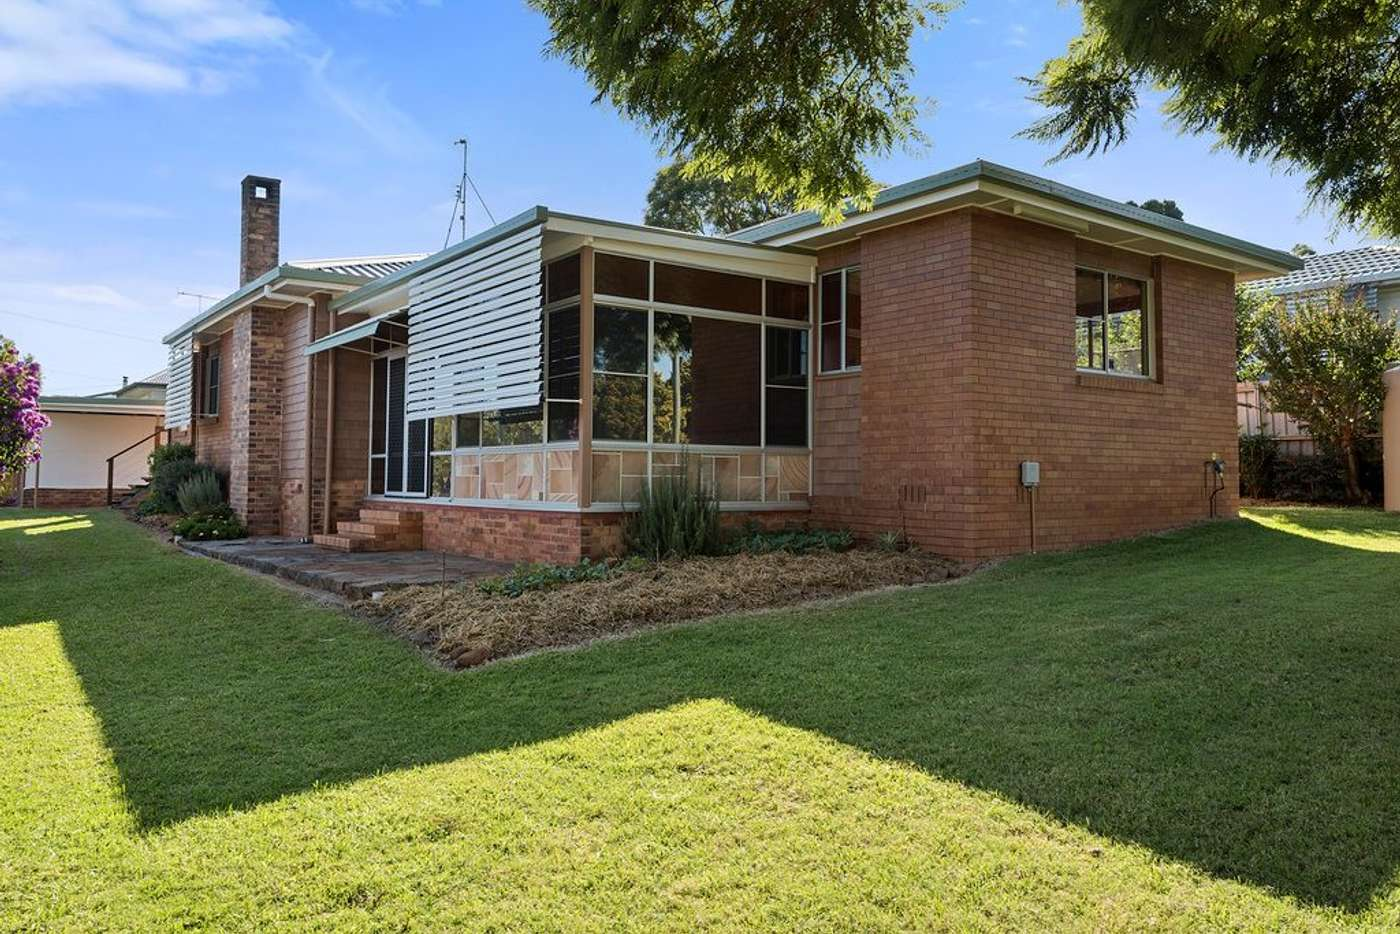 Main view of Homely house listing, 54 Cohoe Street, Rangeville QLD 4350